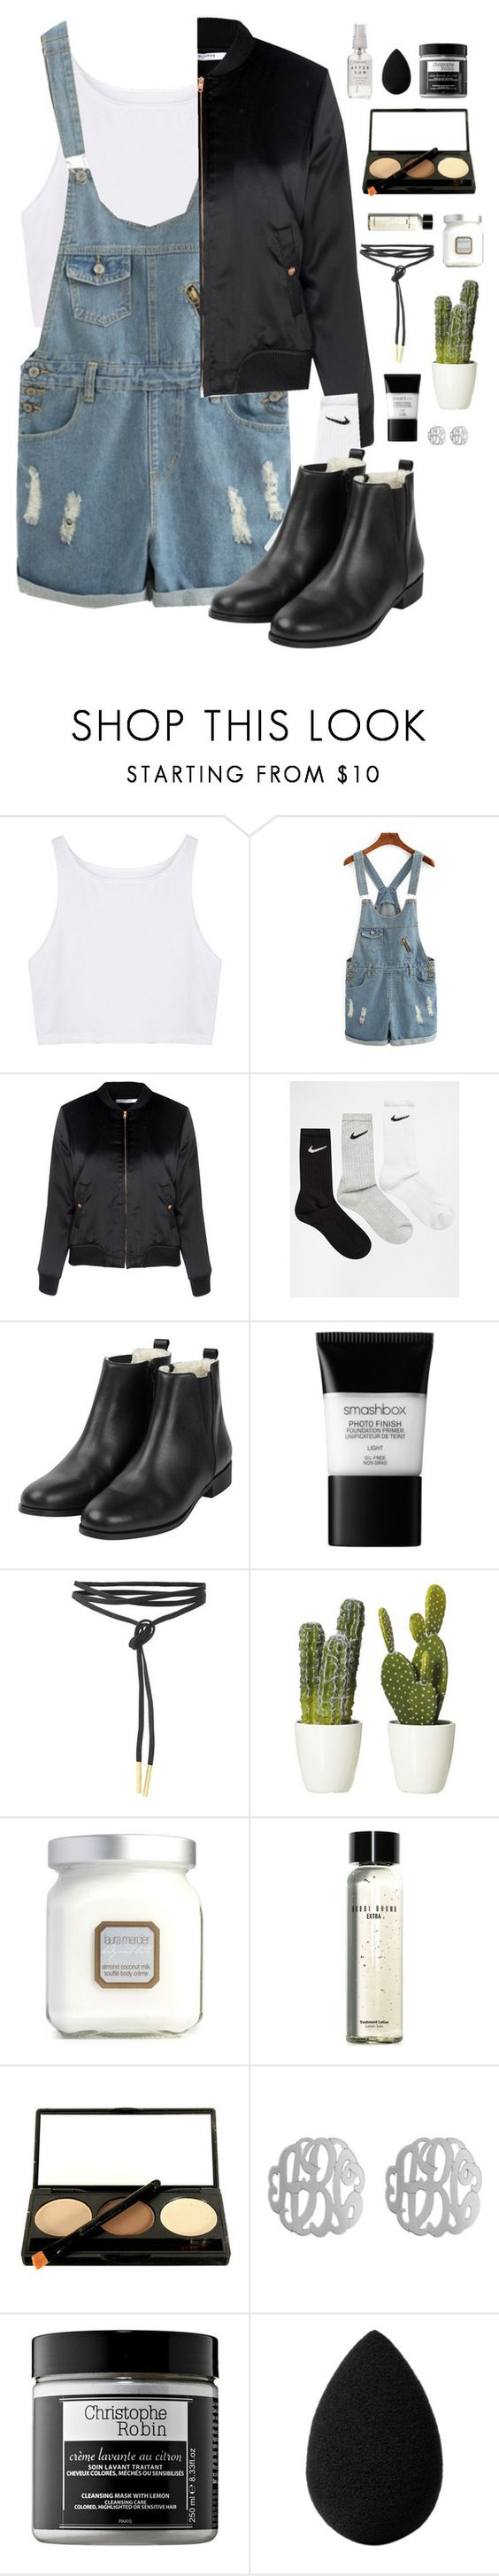 """Hint of green"" by preppysoutherners ❤ liked on Polyvore featuring Glamorous, NIKE, Smashbox, Laura Mercier, Bobbi Brown Cosmetics, Initial Reaction, Christophe Robin, beautyblender and Herbivore"